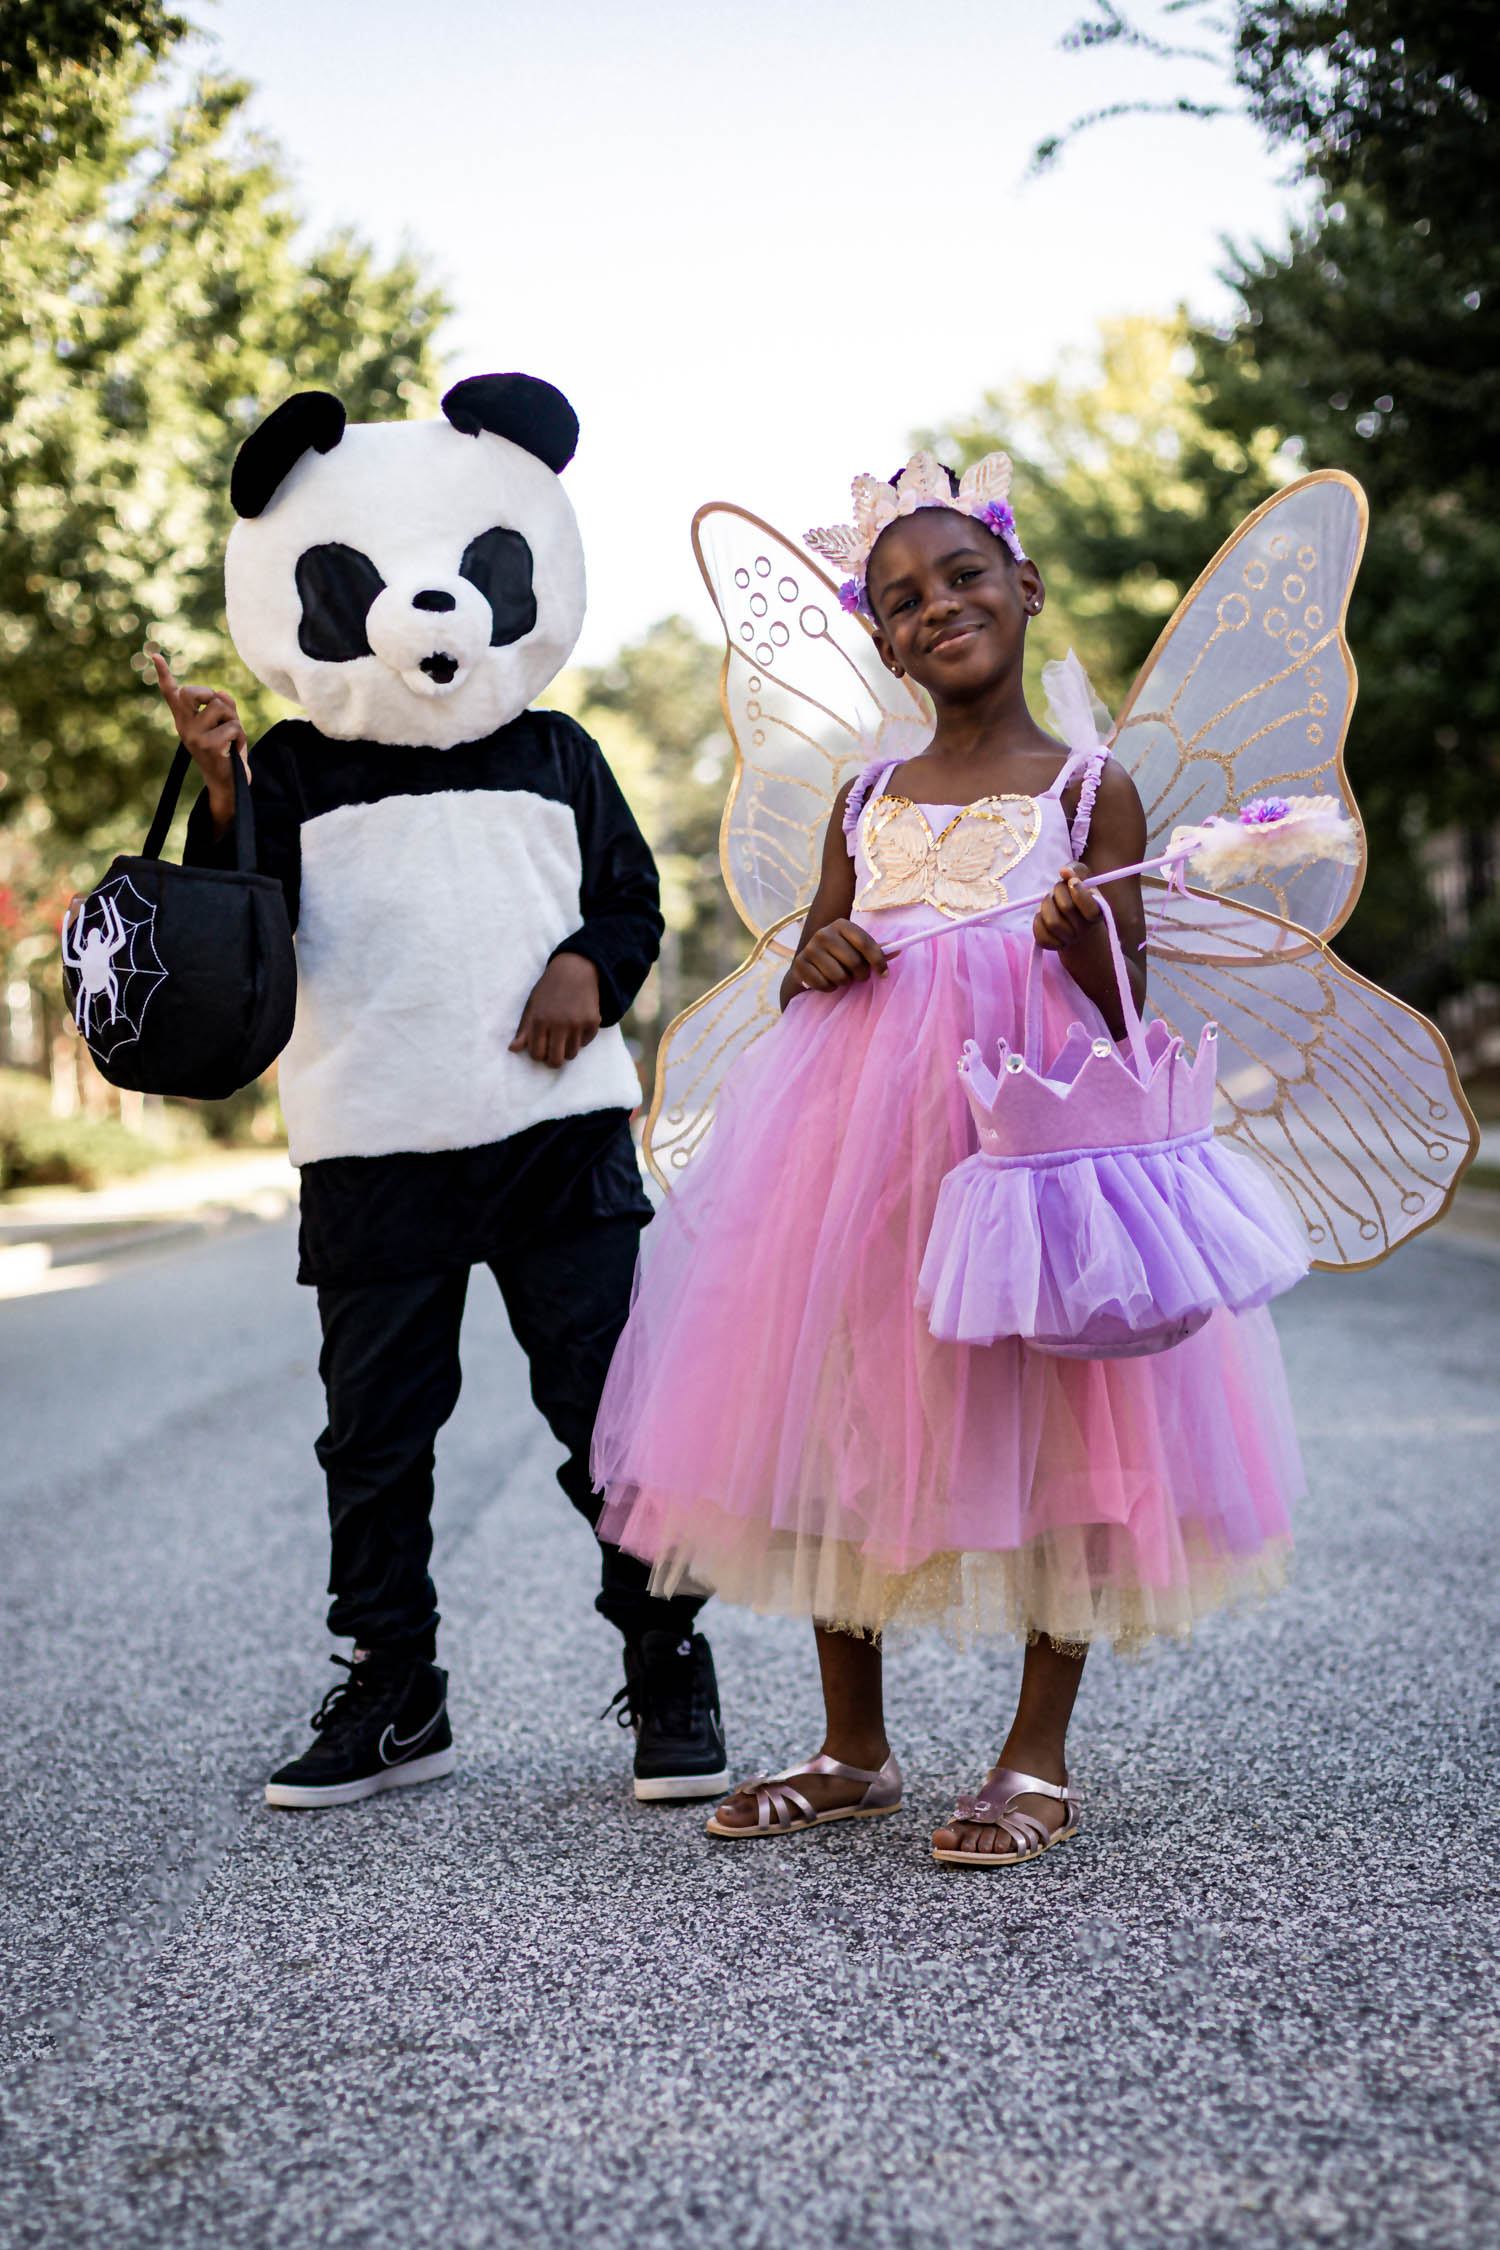 fashion blogger's kids wearing halloween costumes from pottery barn kids, best halloween costumes, panda costume, fairy costume, princess costume, costumes for kids, pottery barn halloween costumes for kids, how to pick the best costumes for kids, kids halloween costumes, halloween kids costumes,